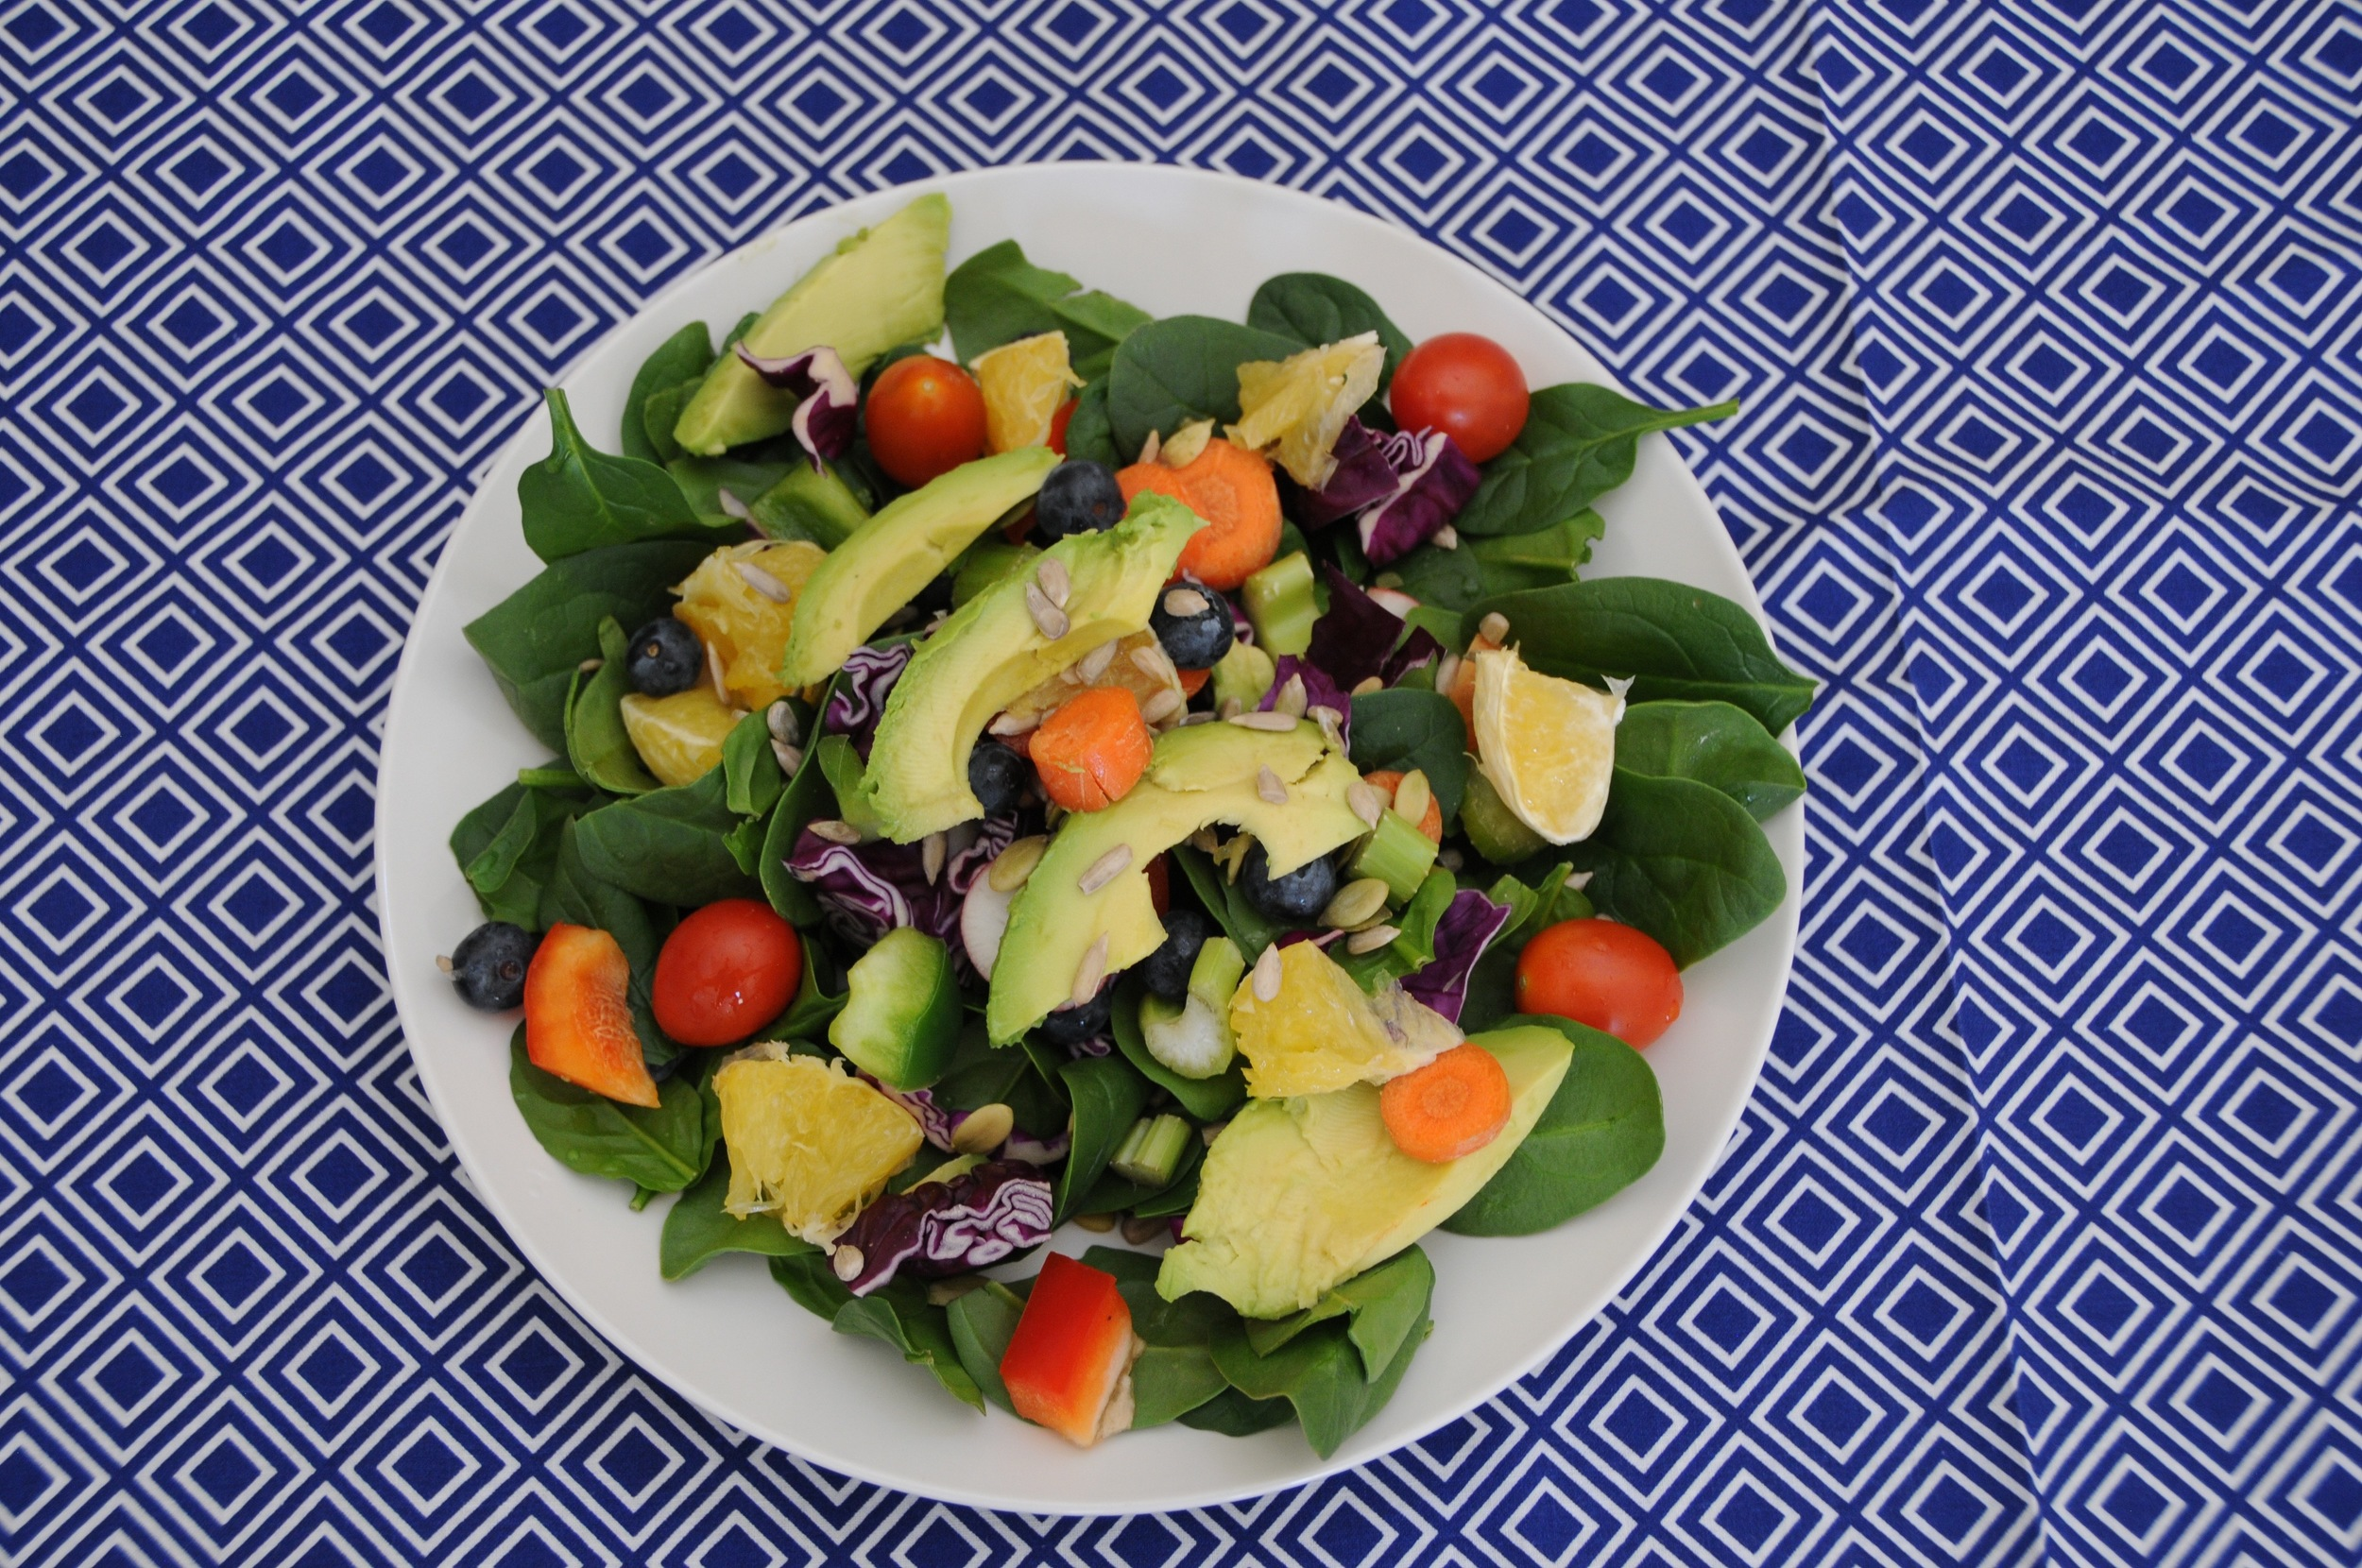 Another tasty lunch salad topped with some blueberries for a little sweetness